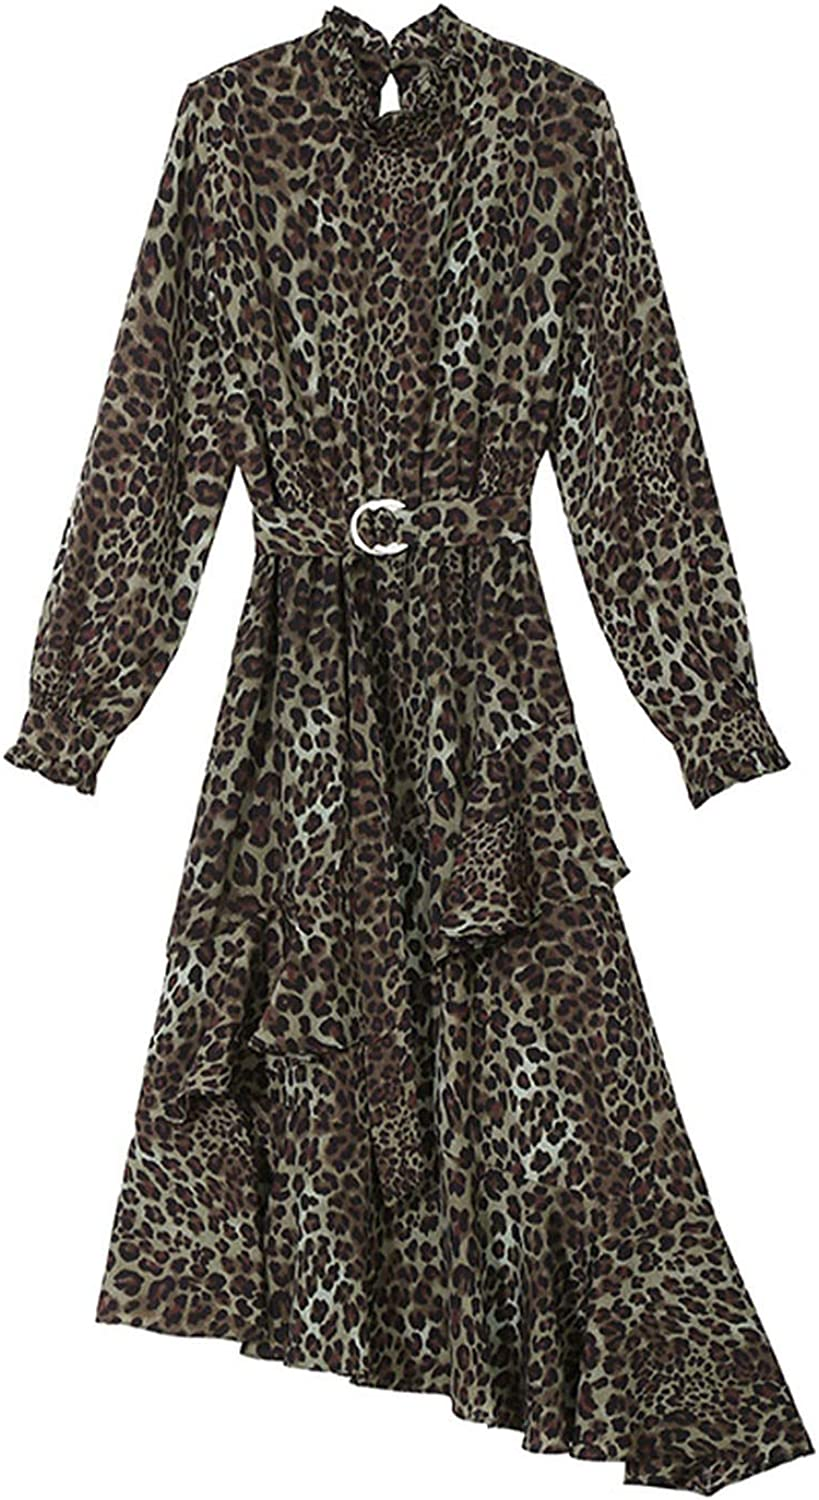 AllAboutUs Women Spring Yellow Leopard Dress with Sashes Long Sleeve Slopping Dress 4628